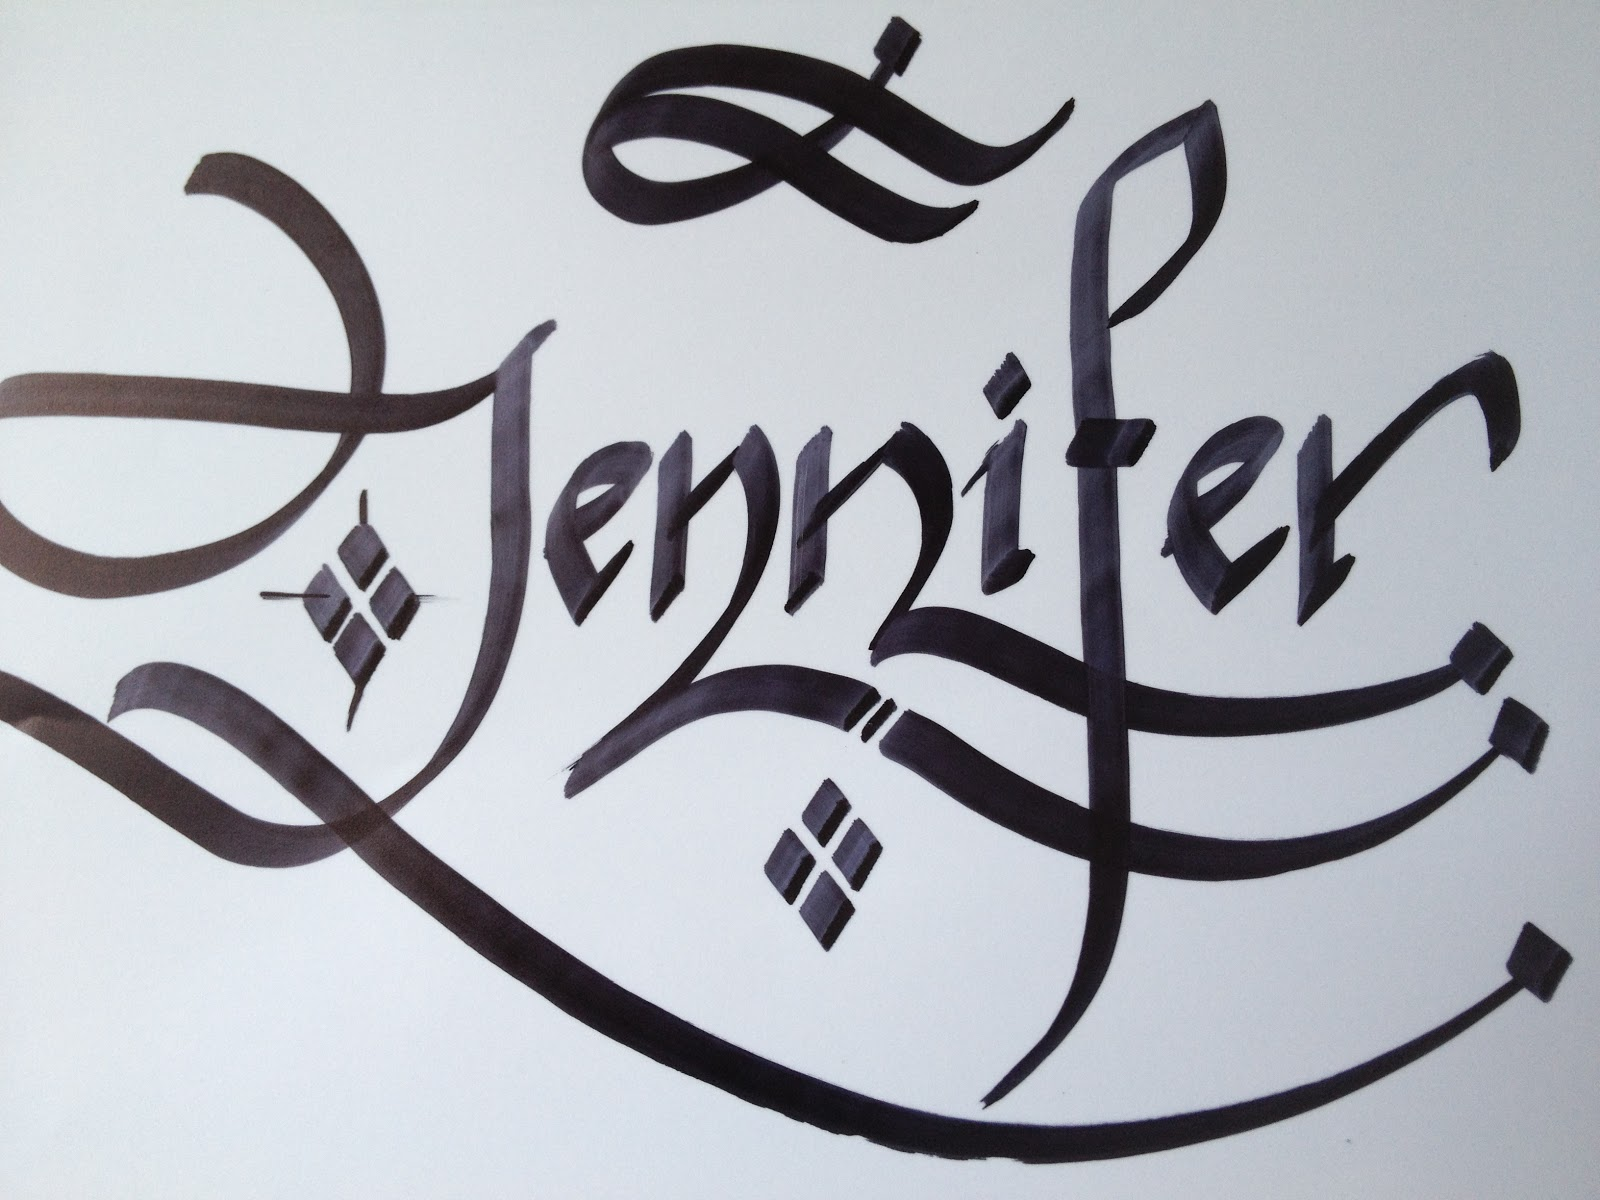 Gallery for the name jennifer in graffiti letters My name in calligraphy